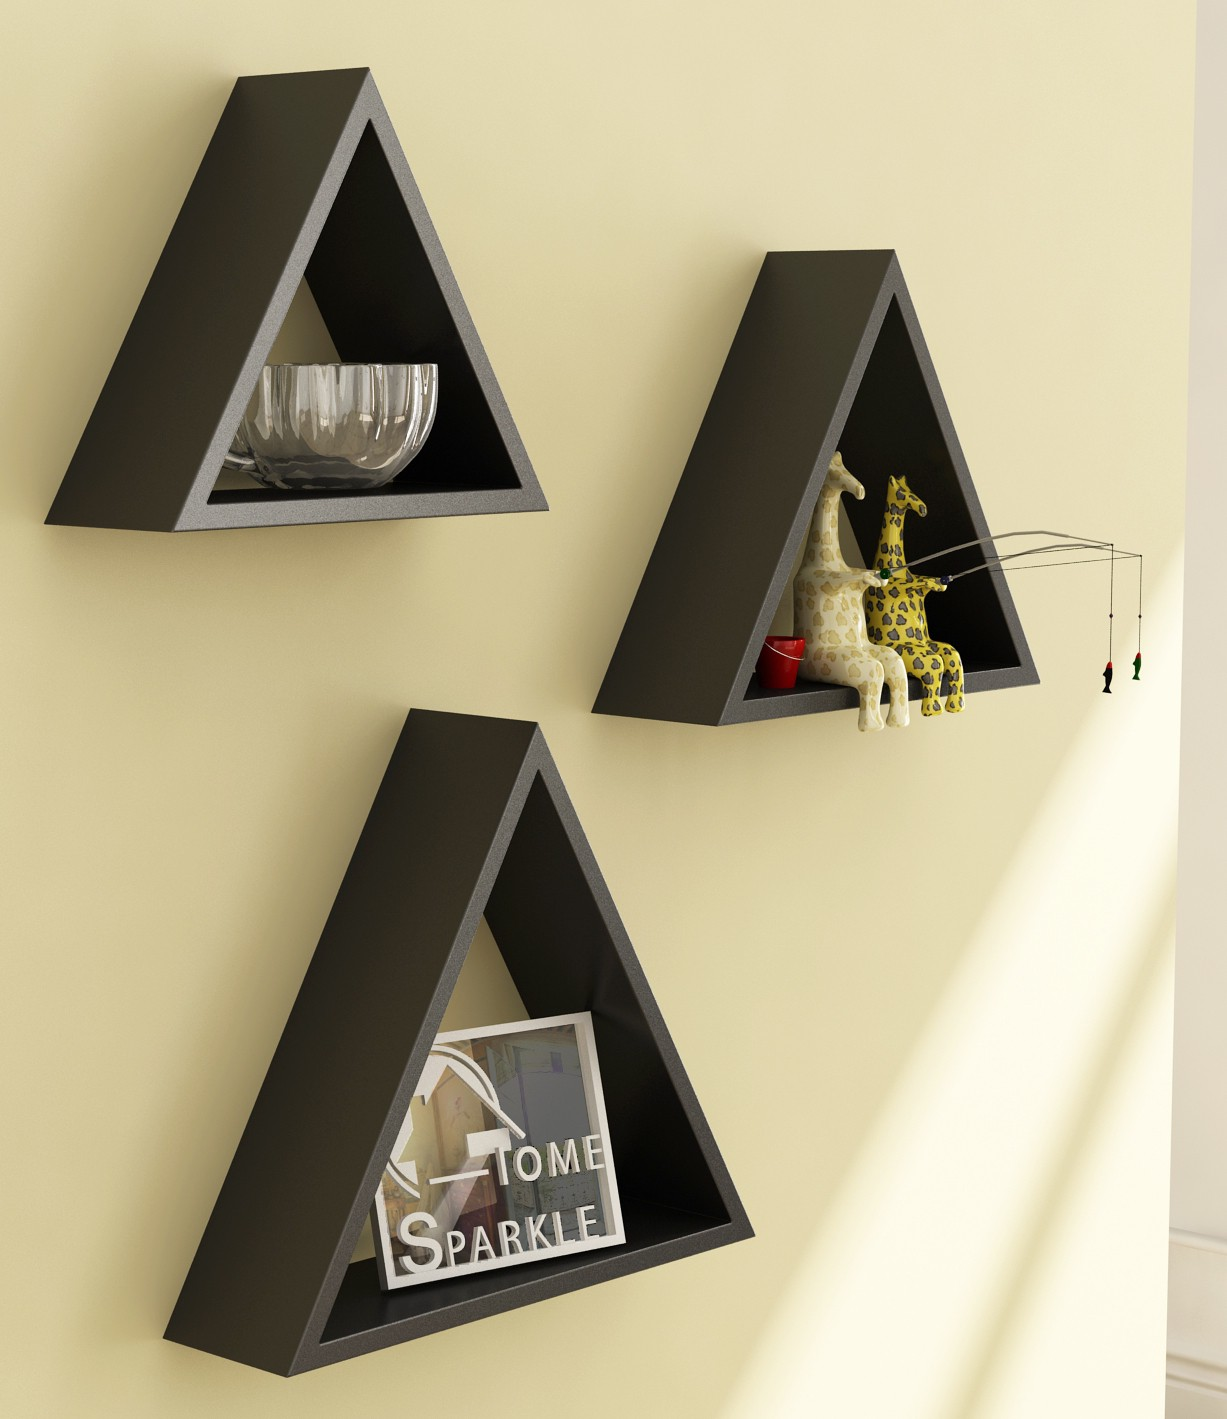 View Home Sparkle 3 Triangular Shelves Wooden Wall Shelf(Number of Shelves - 3, Black) Furniture (Home Sparkle)